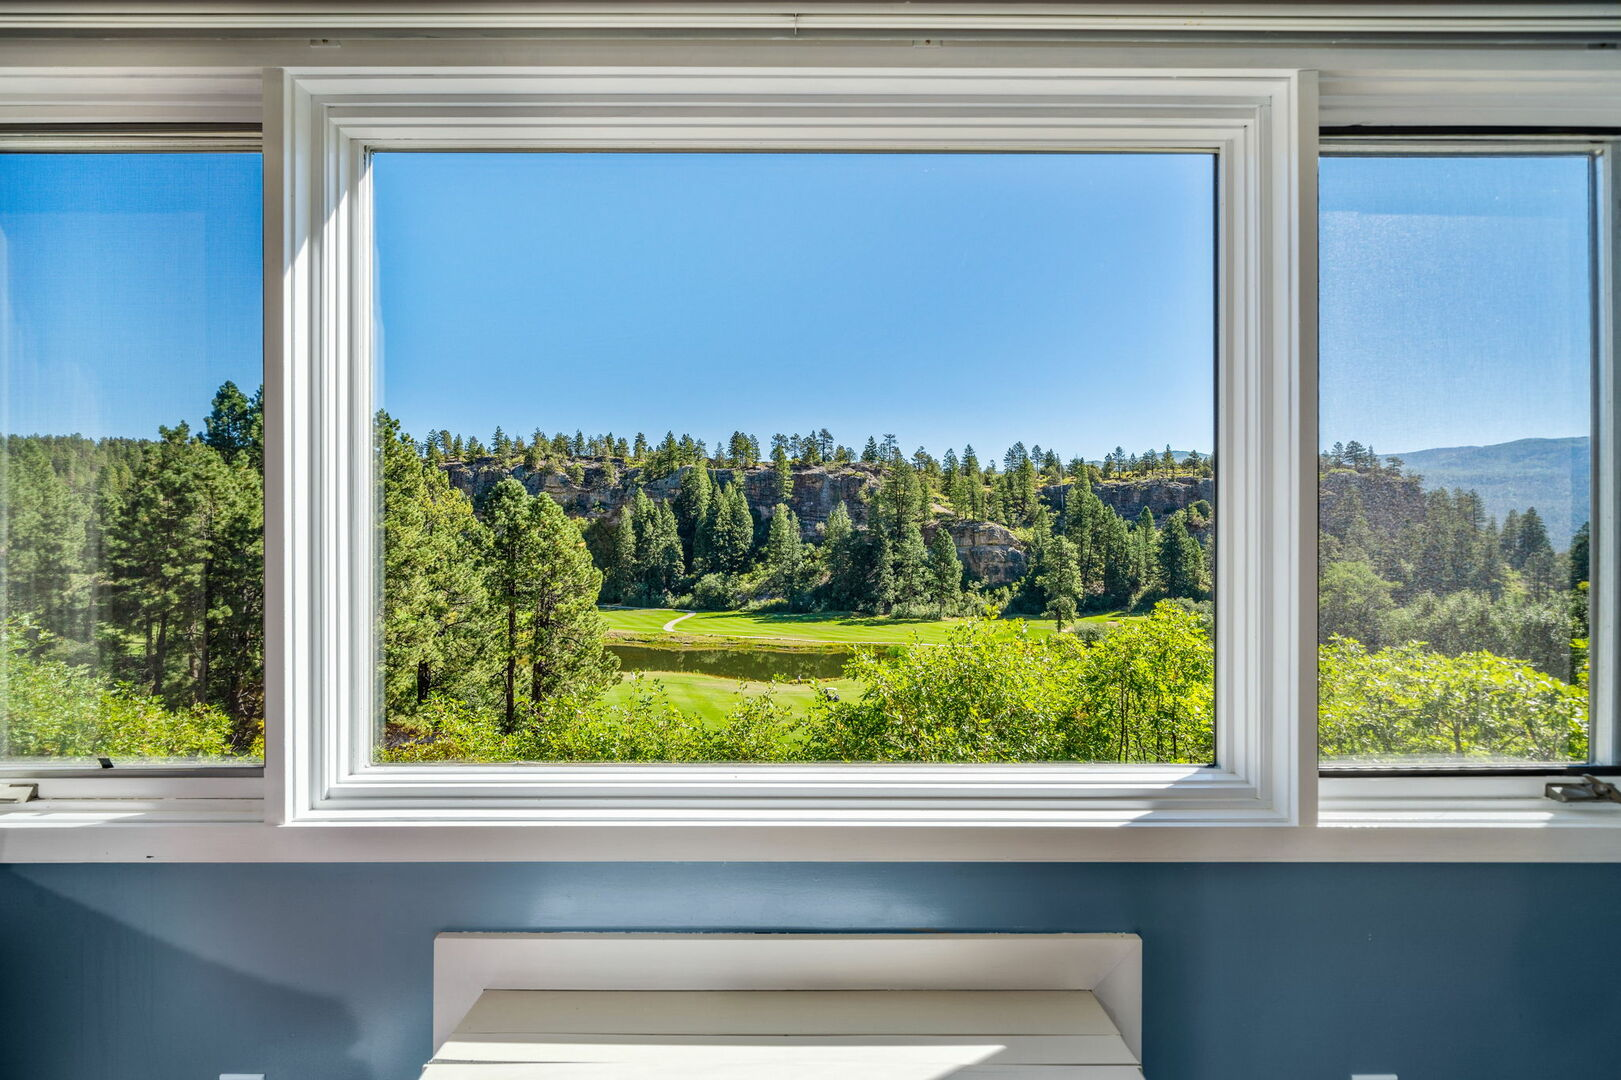 View from your window